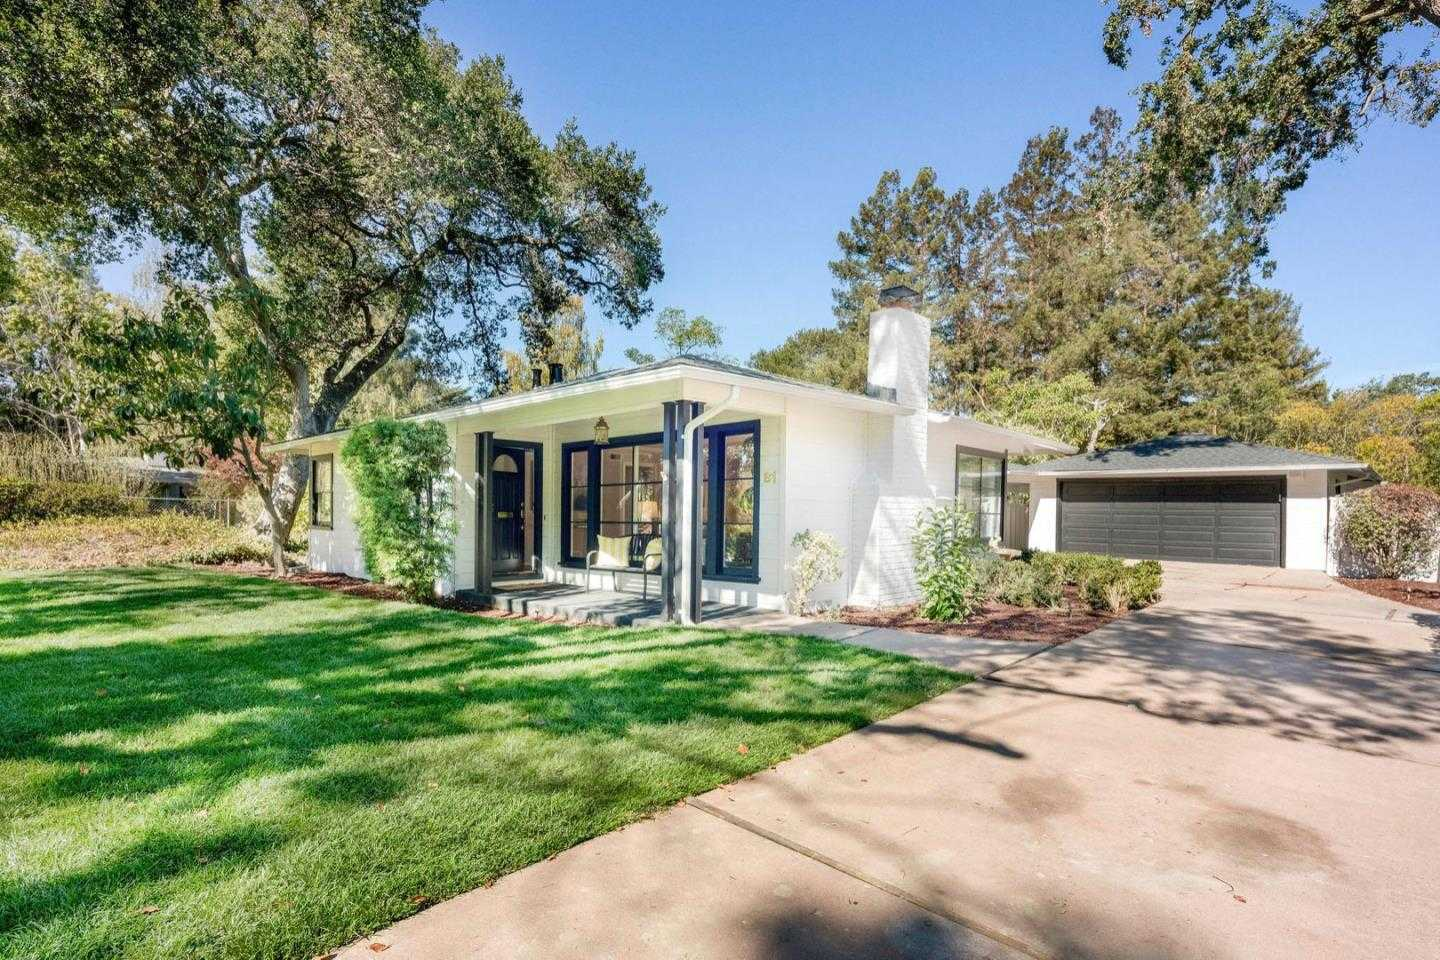 $2,099,000 - 3Br/2Ba -  for Sale in Atherton